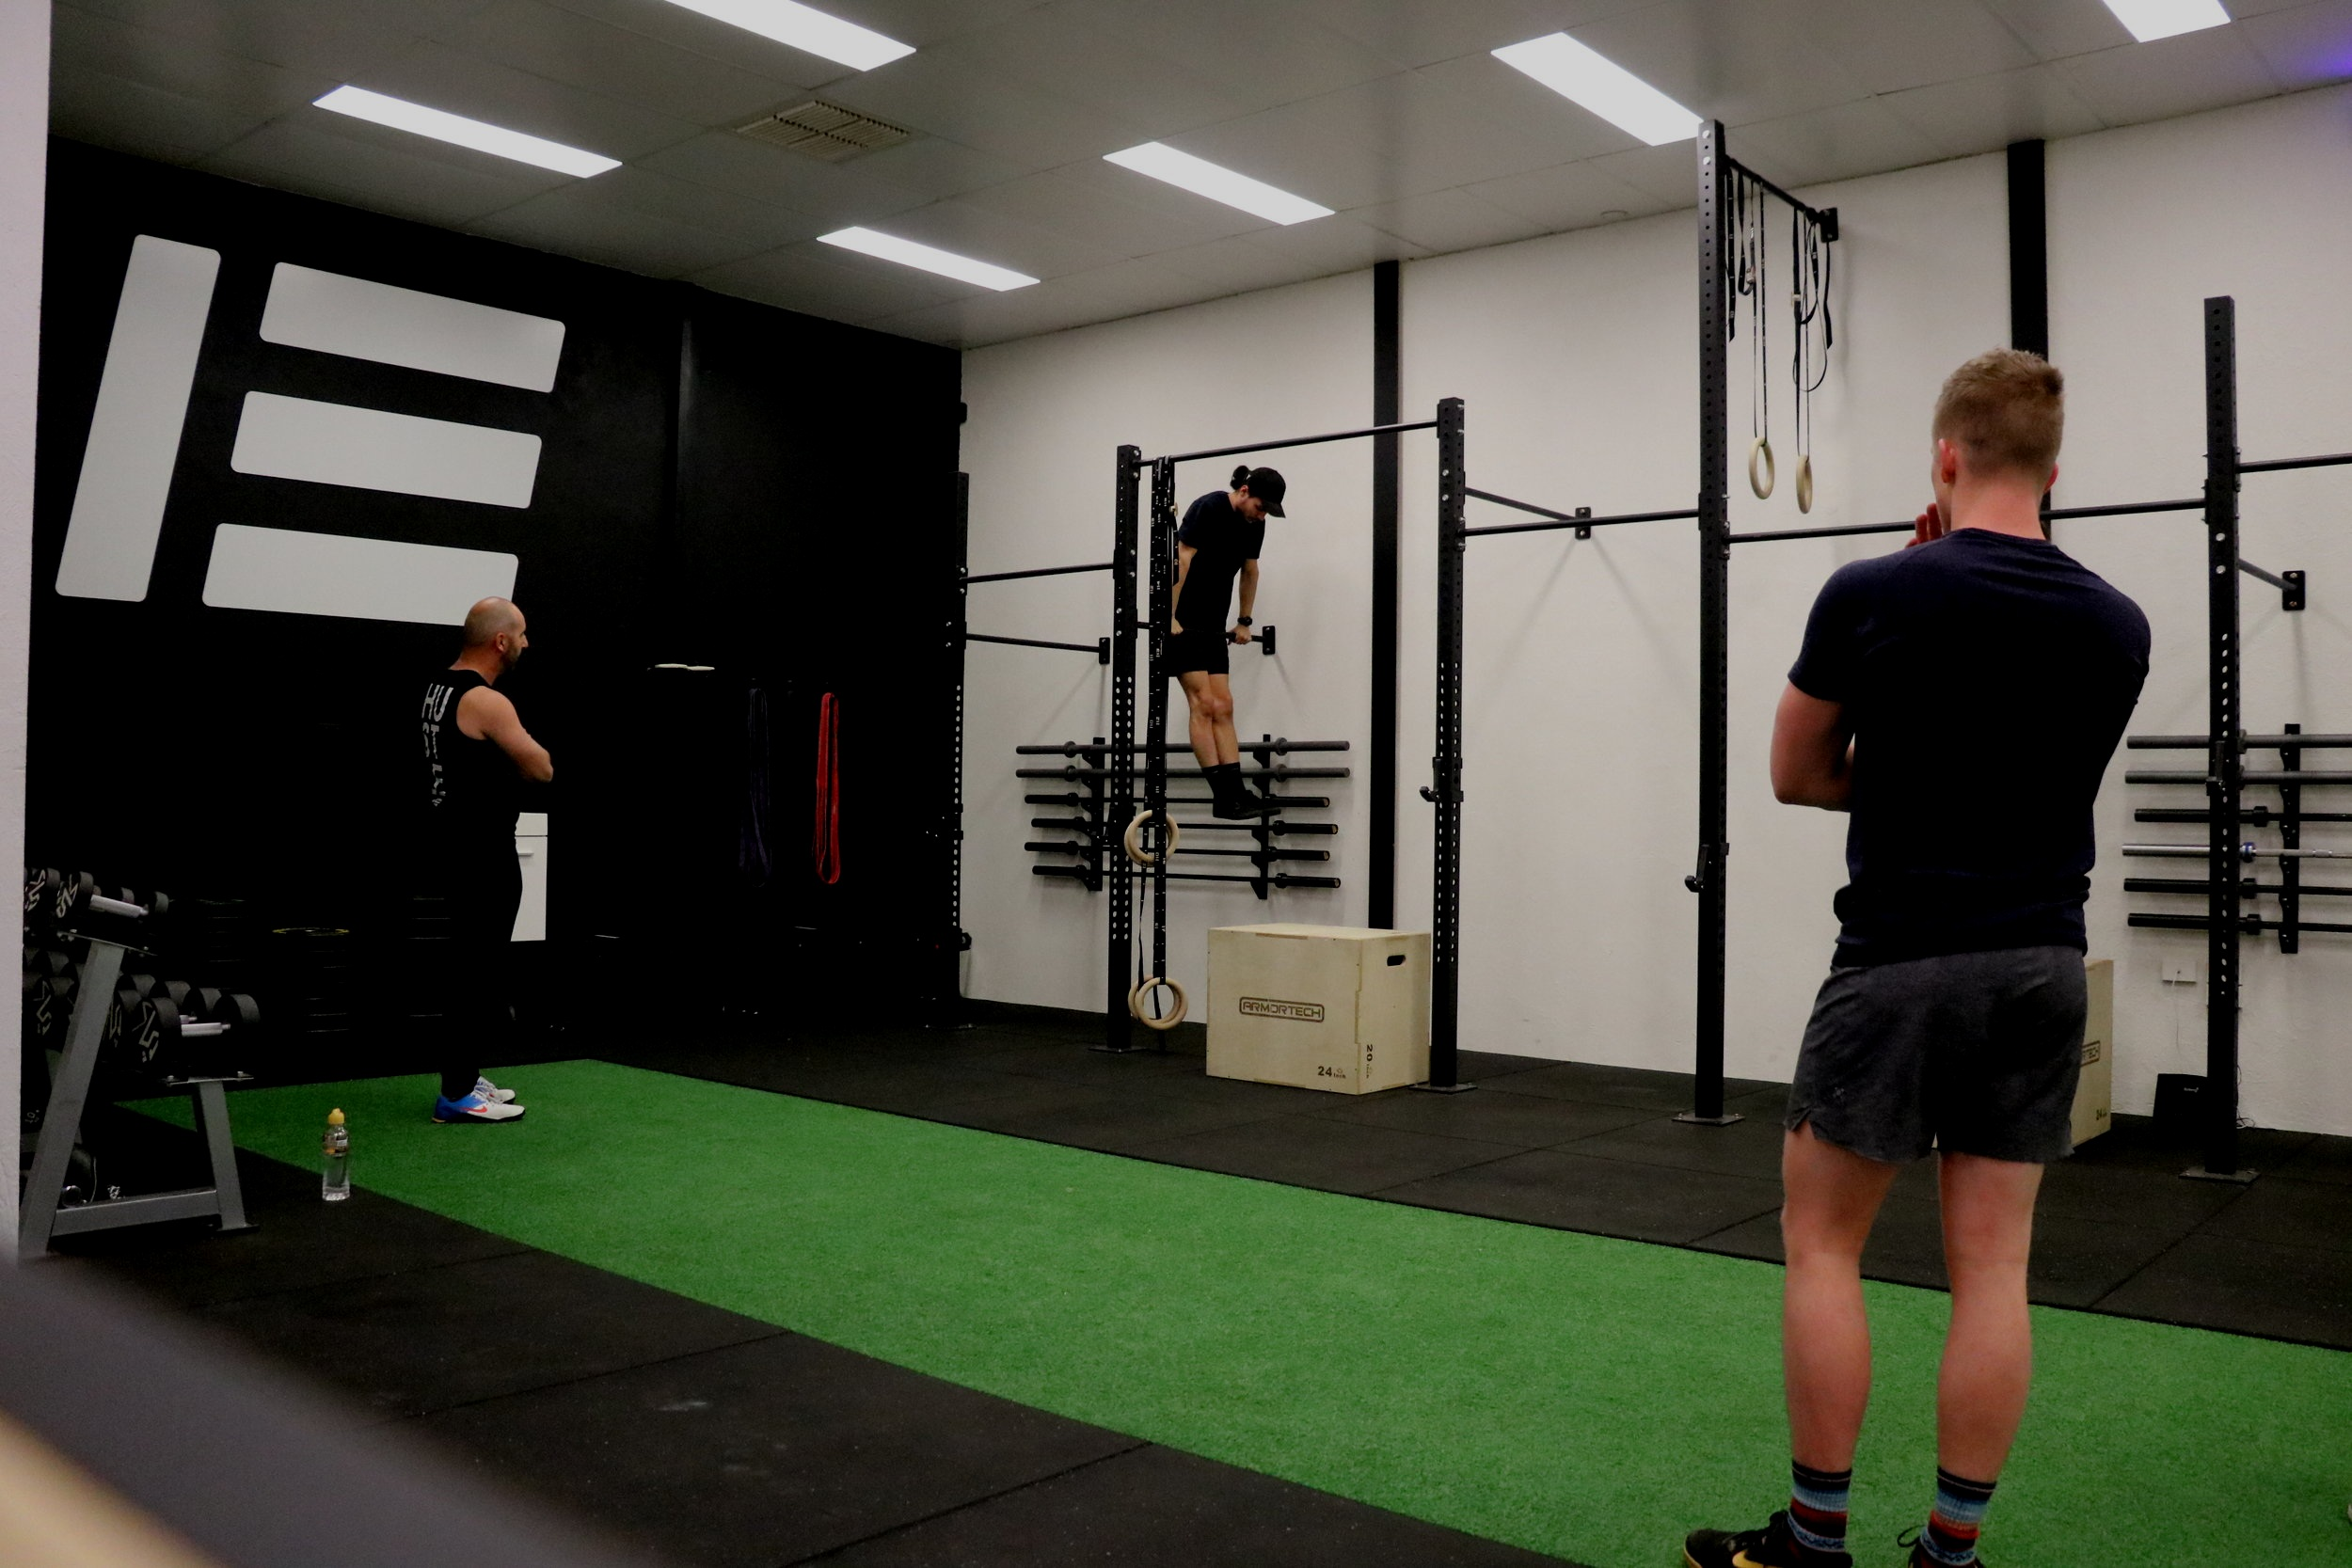 Bseline_(fitness testing) - Used to test you fitness level and gauge improvements. Run monthly, this is a chance to show yourself what you've been putting in the work for.